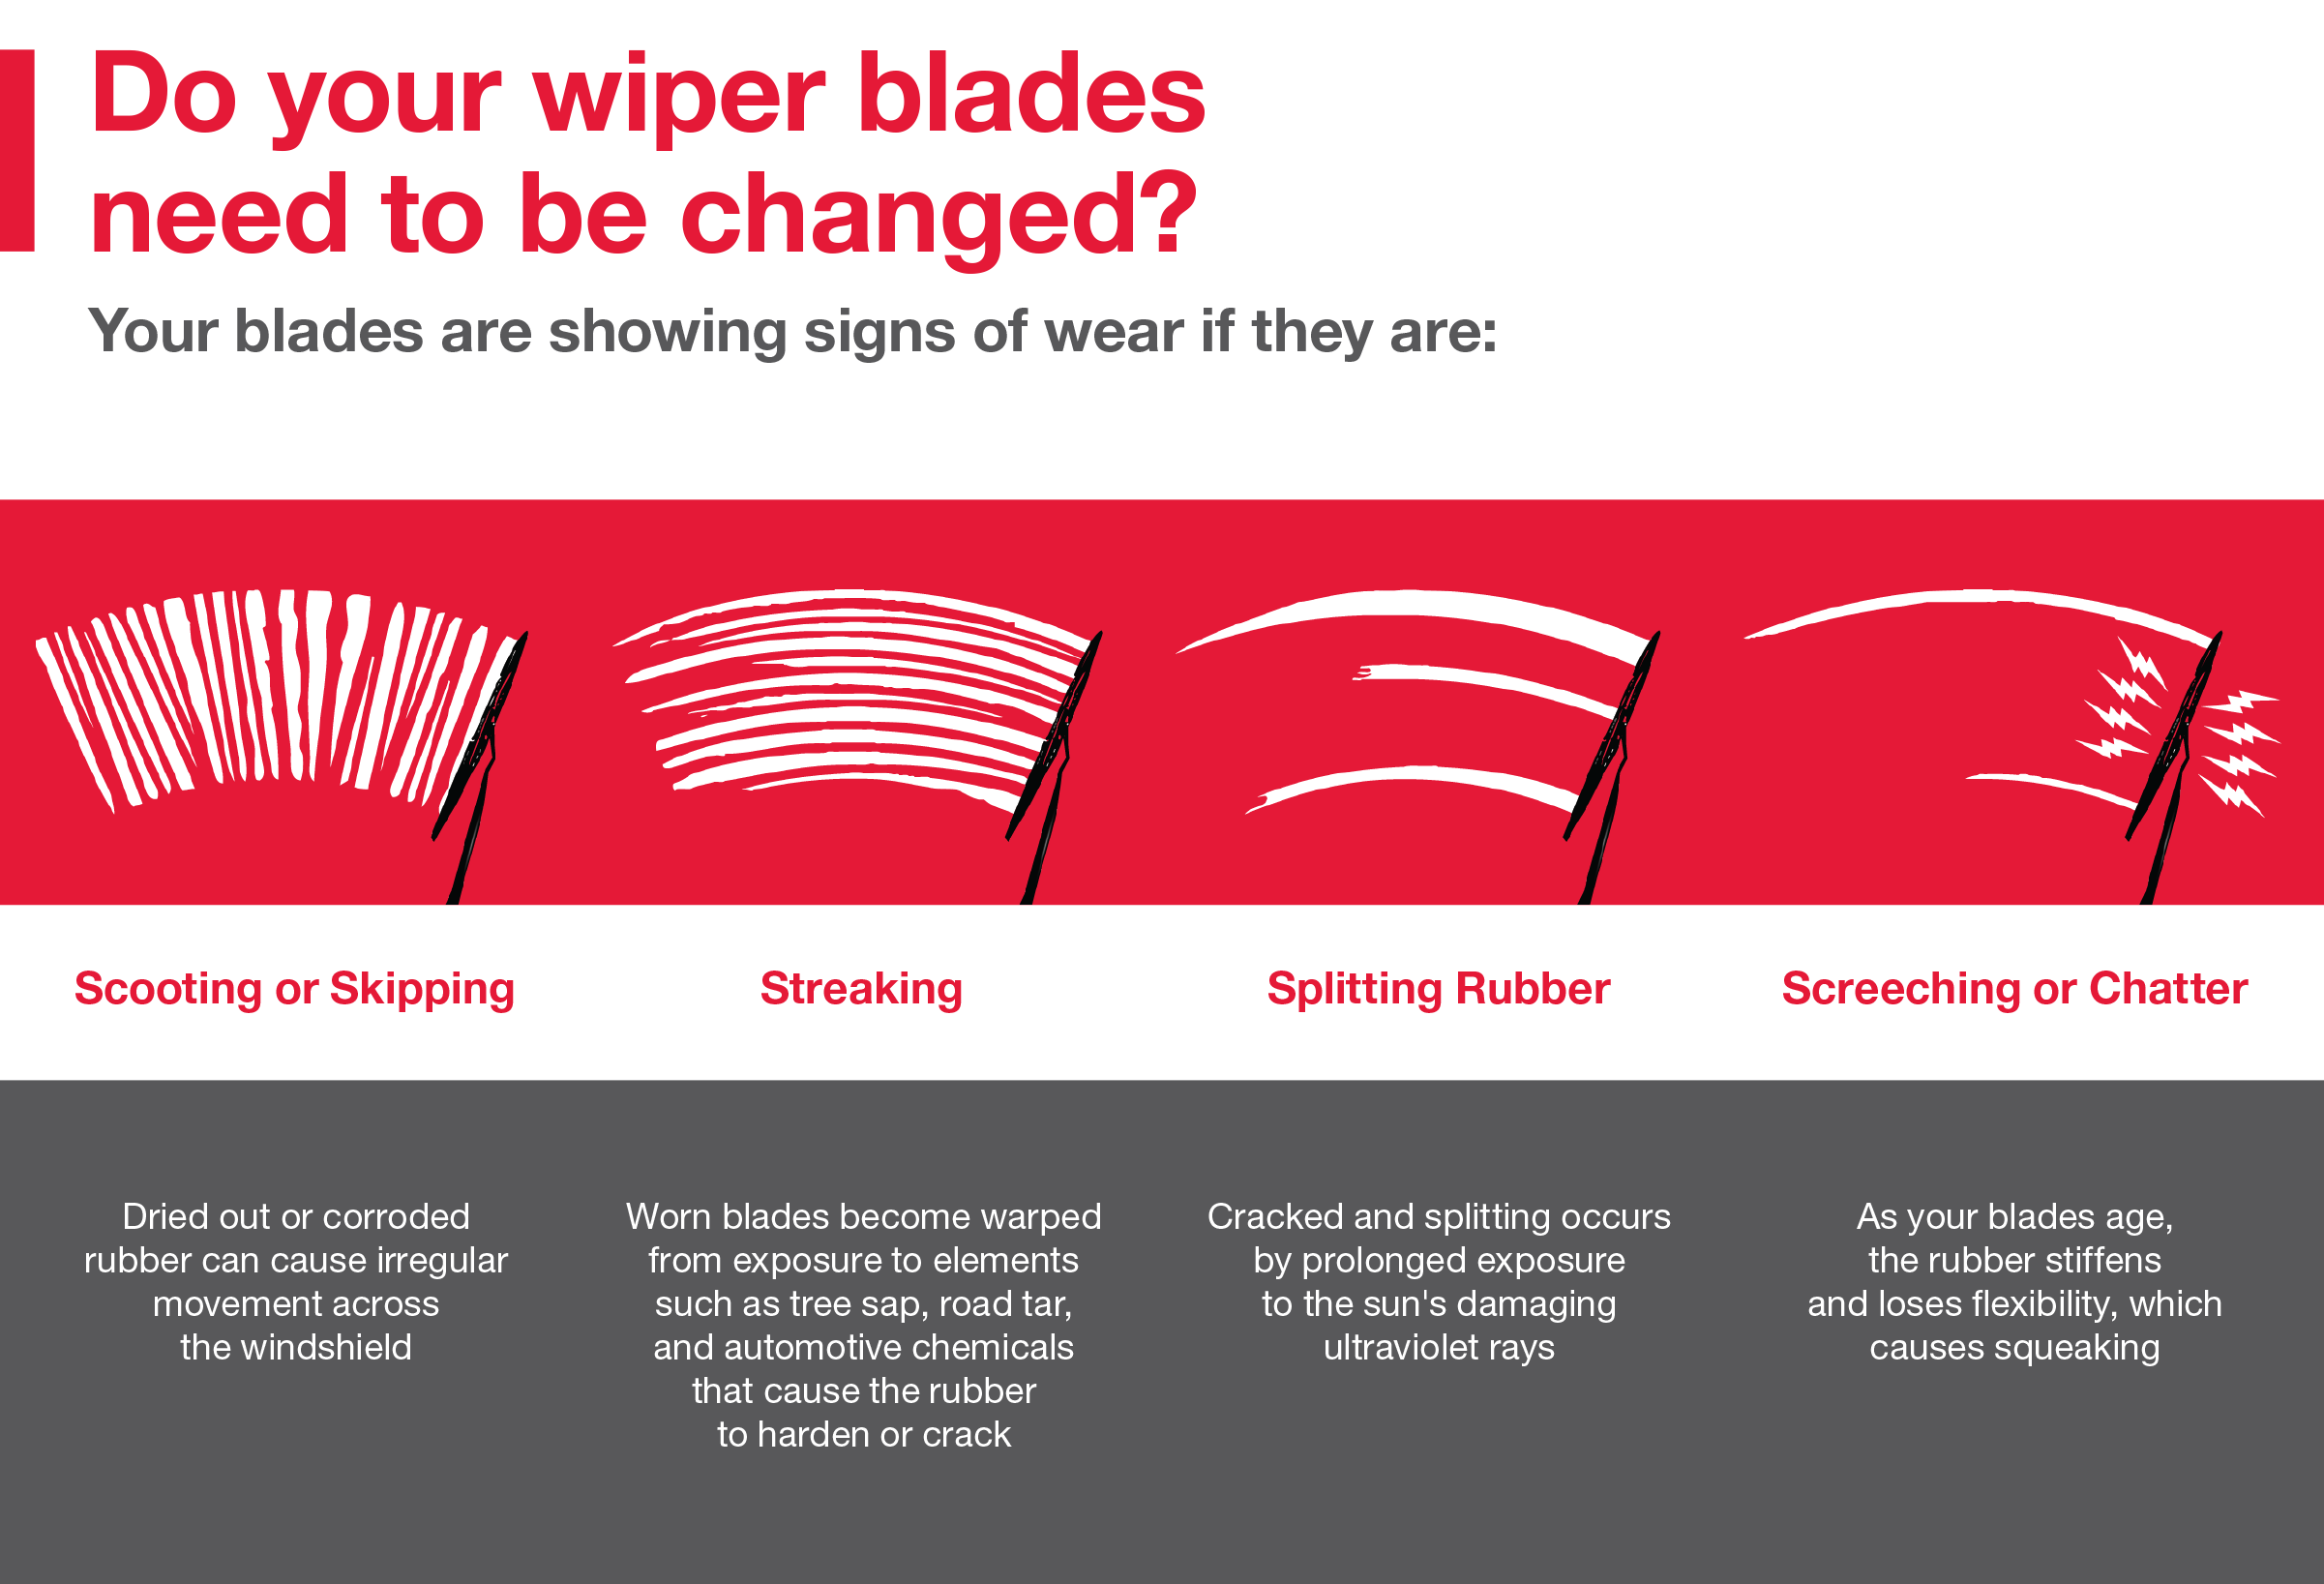 Do your wiper blades need to be changed? Call your local dealer for more info: 210-630-4199